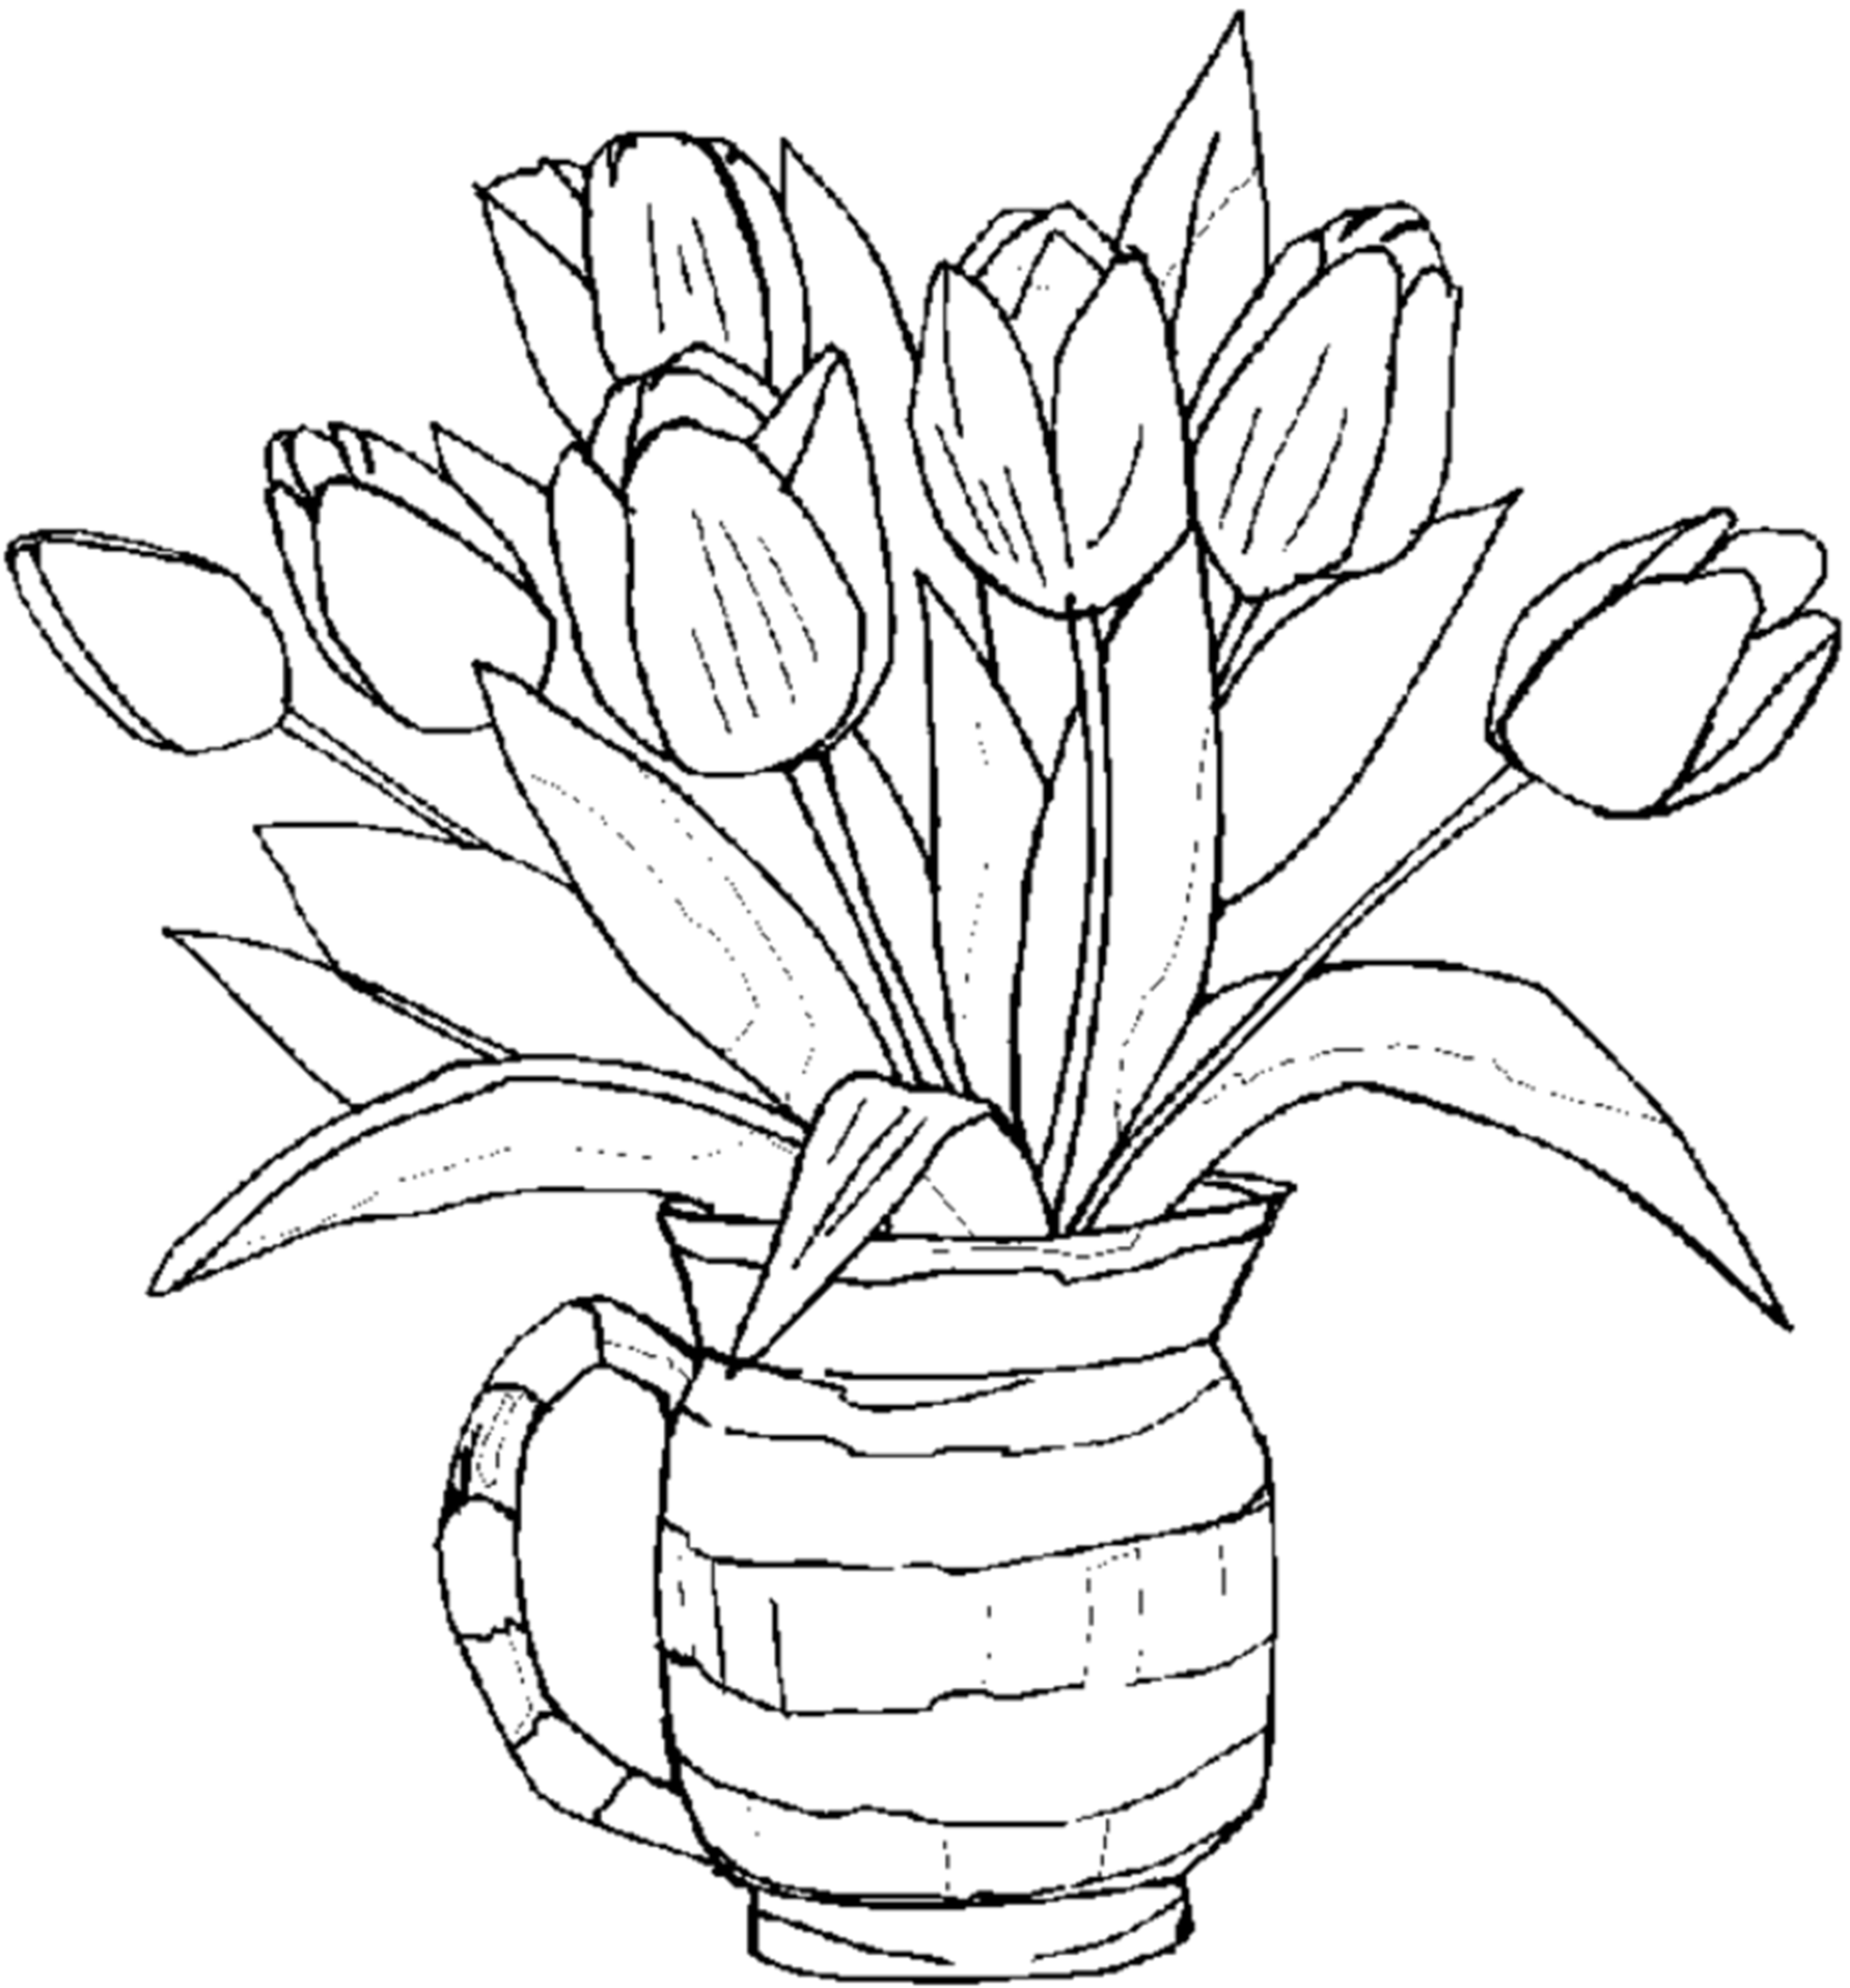 childrens coloring pages flowers flowers to color for kids flowers kids coloring pages pages childrens flowers coloring